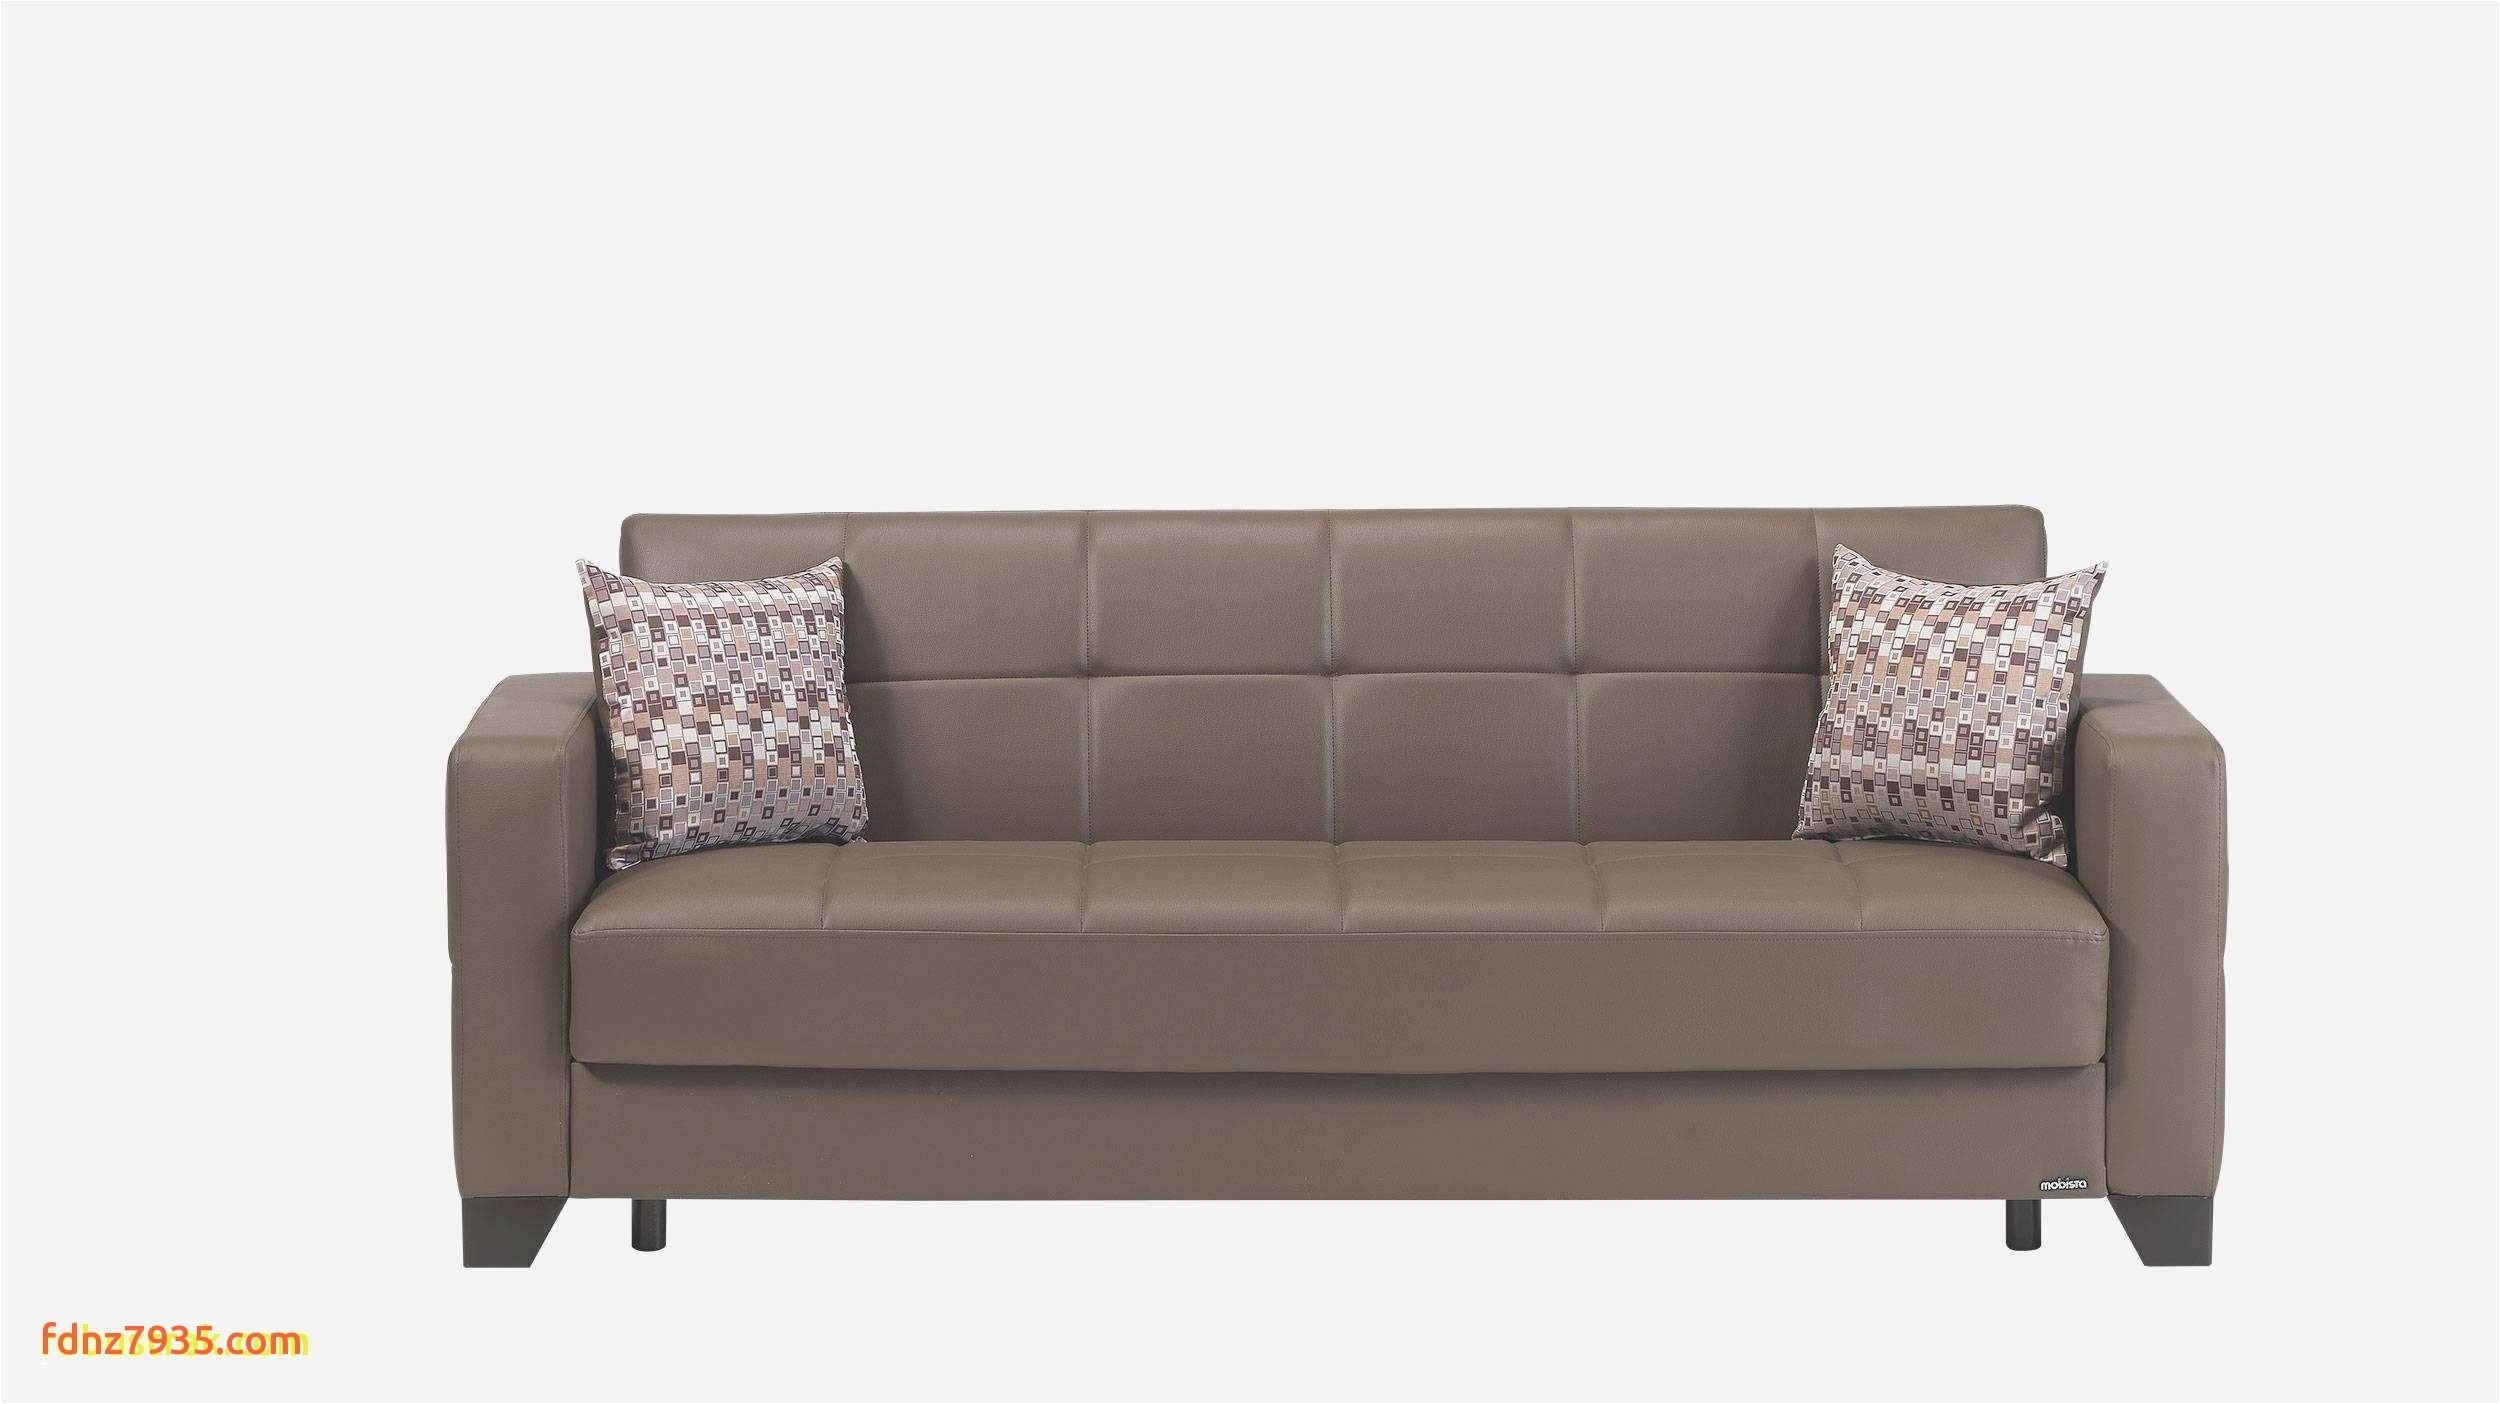 Furniture Covers for Storage sofa Bed with Storage Fresh sofa Design